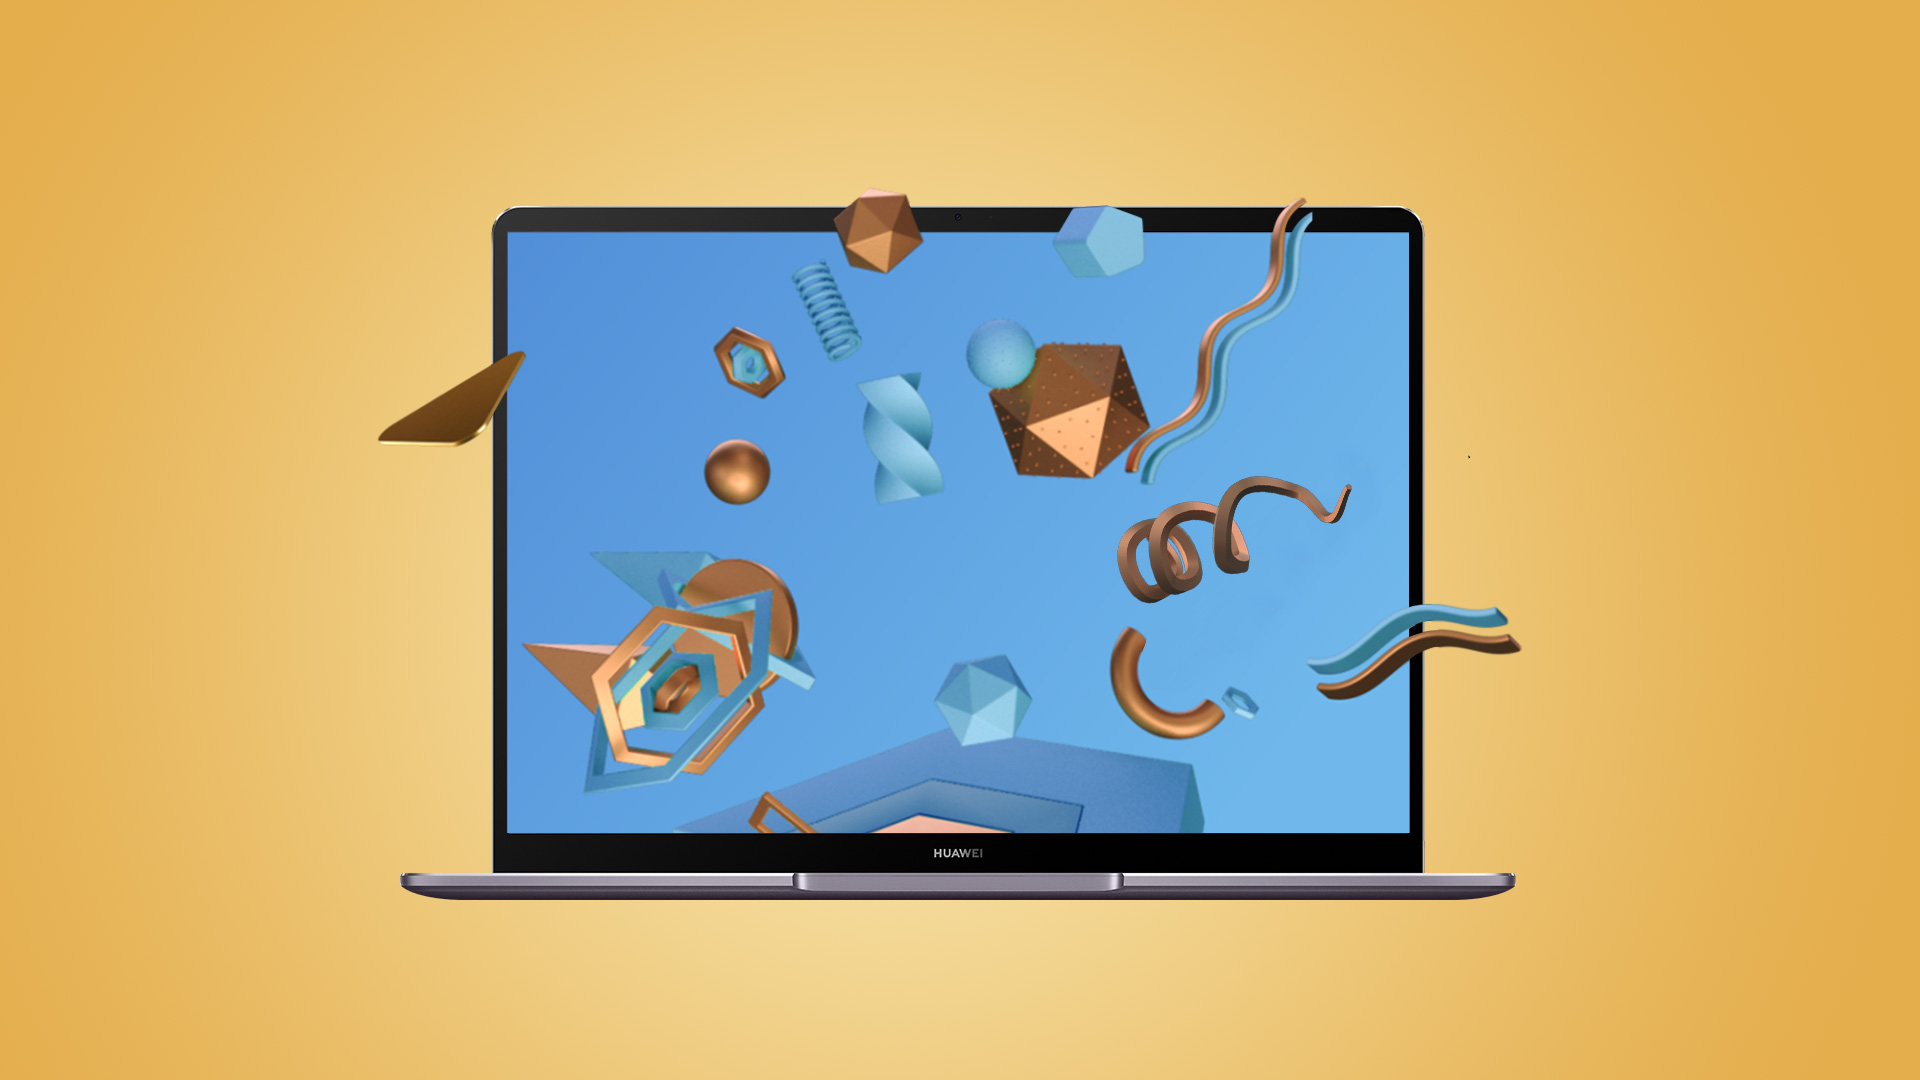 Huawei MateBook full view display with unique horizon